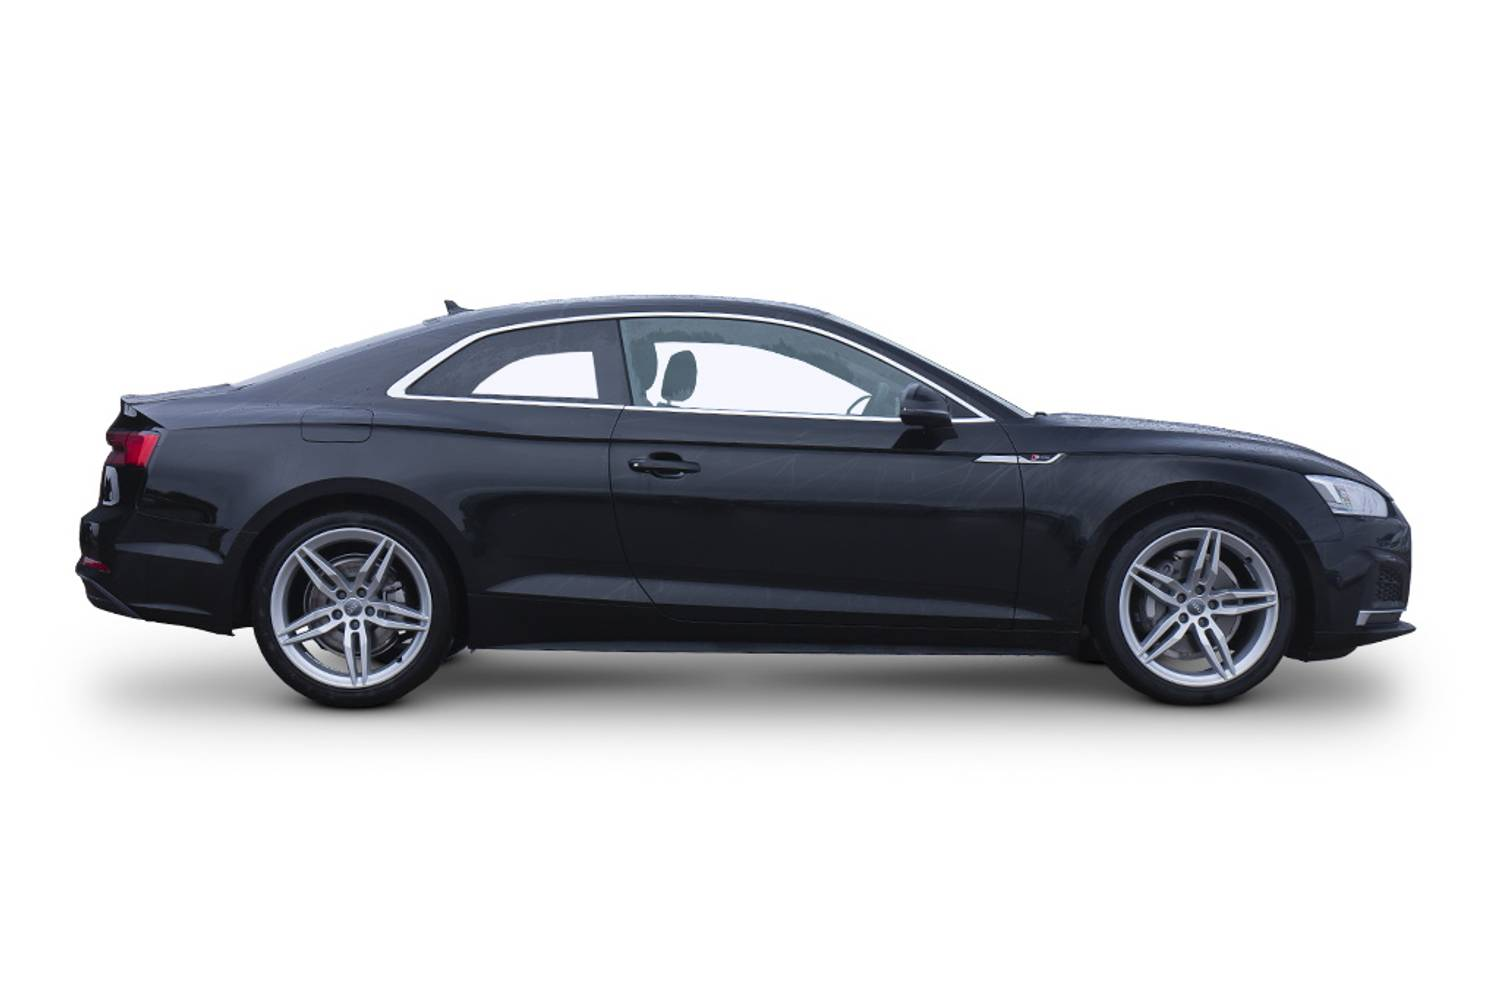 new audi a5 coupe 2 0 tfsi 252 ps quattro sport 2 door s tronic 2016 for sale. Black Bedroom Furniture Sets. Home Design Ideas